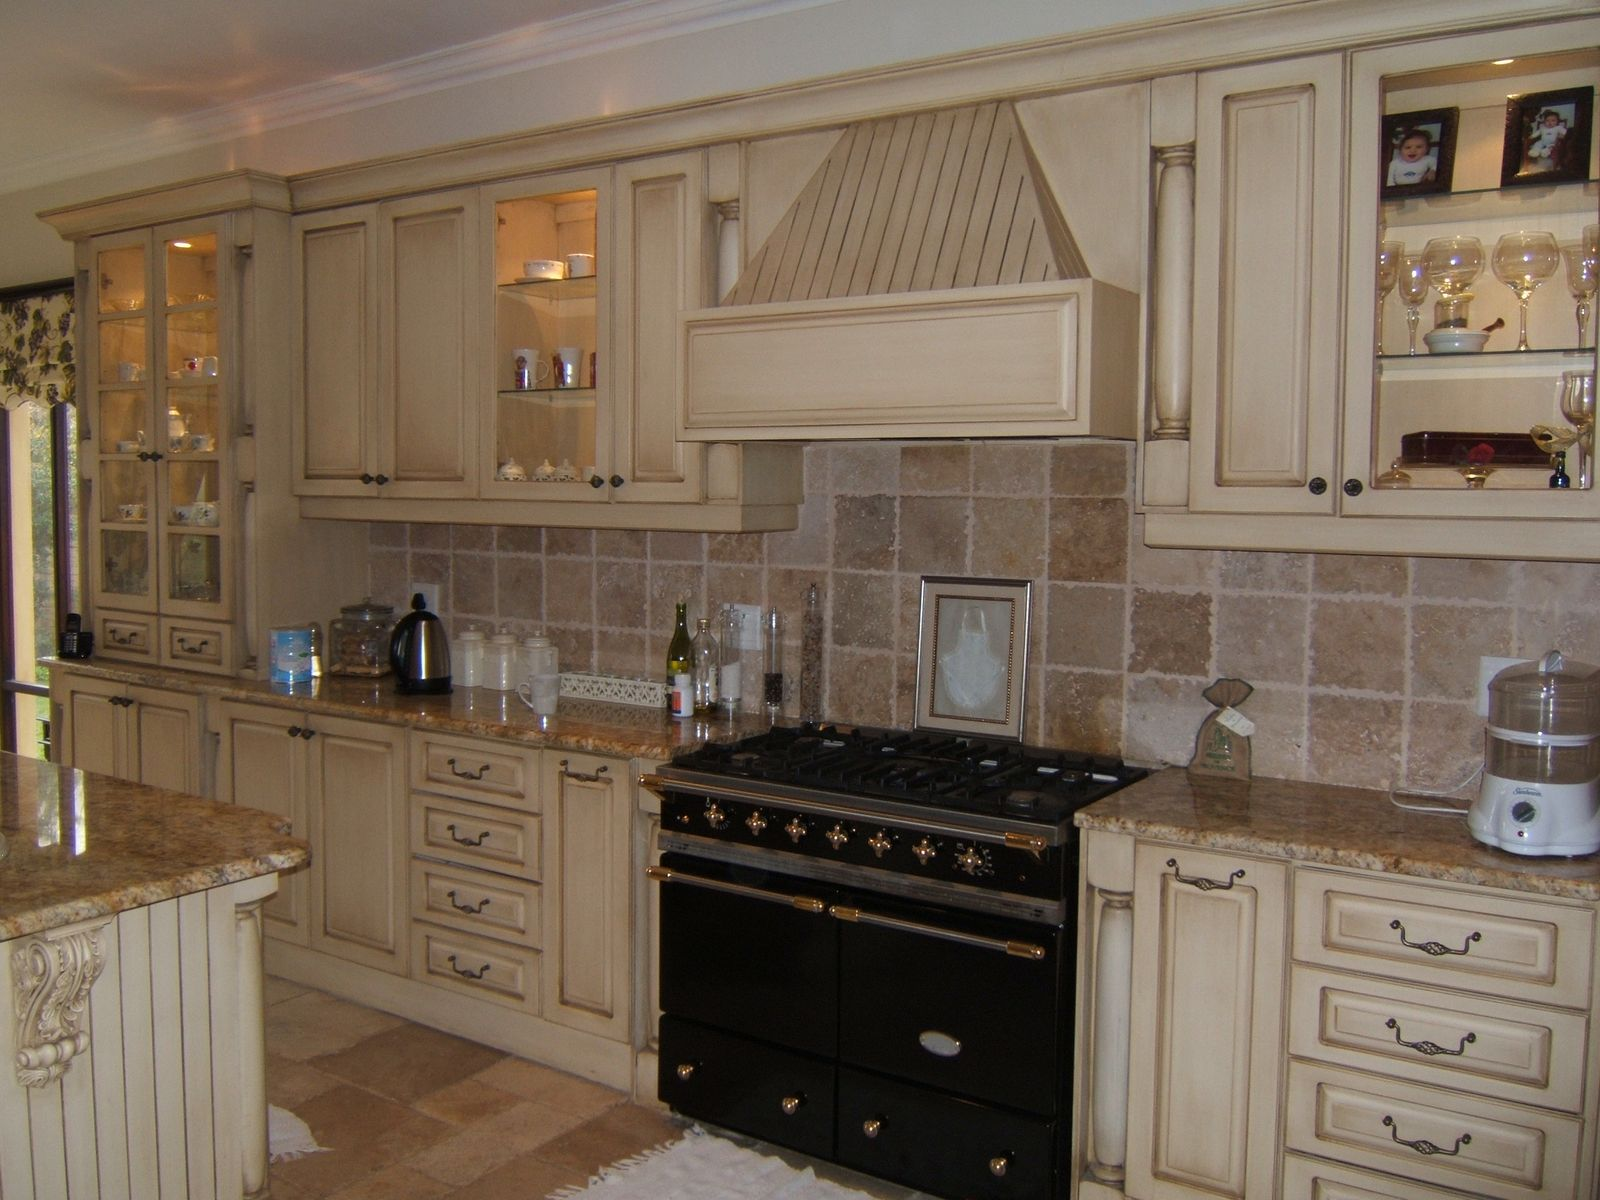 Ojeli solucan mutfak dekorasyonu for My kitchen design style